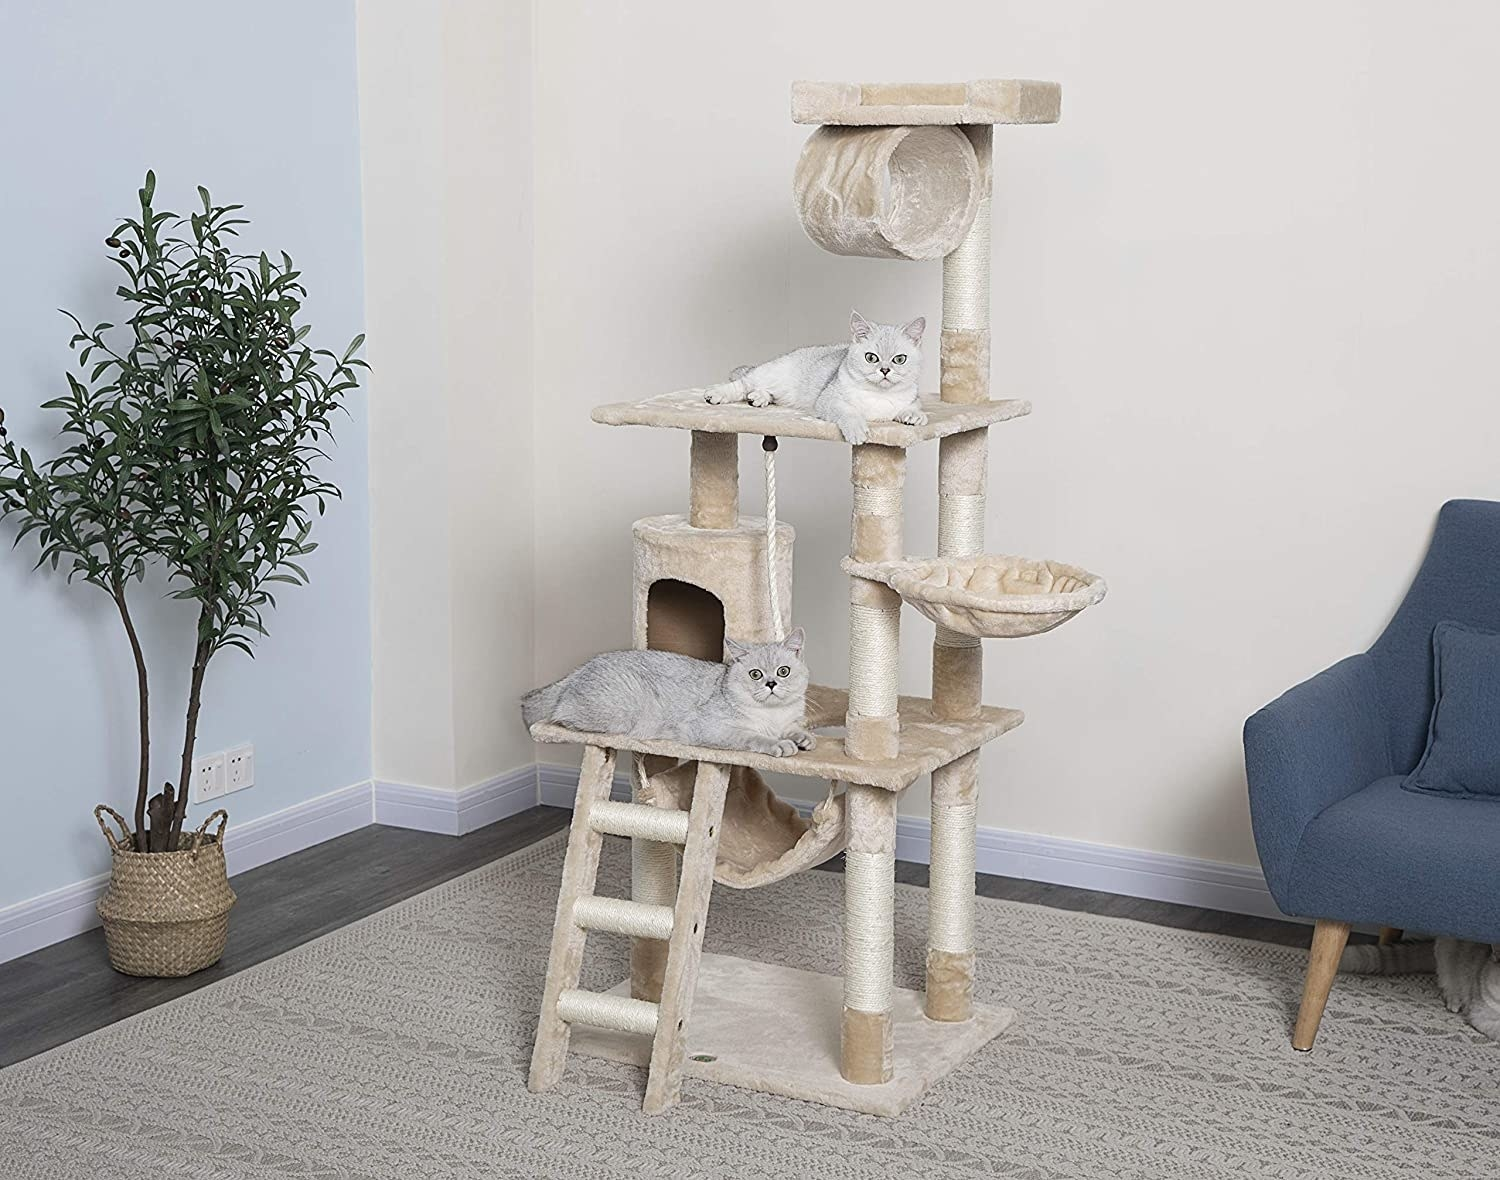 A product shot of a multi-level beige carpeted cat tower with stairs, pouches to sleep in, sisal leg posts to scratch, and nooks to explore